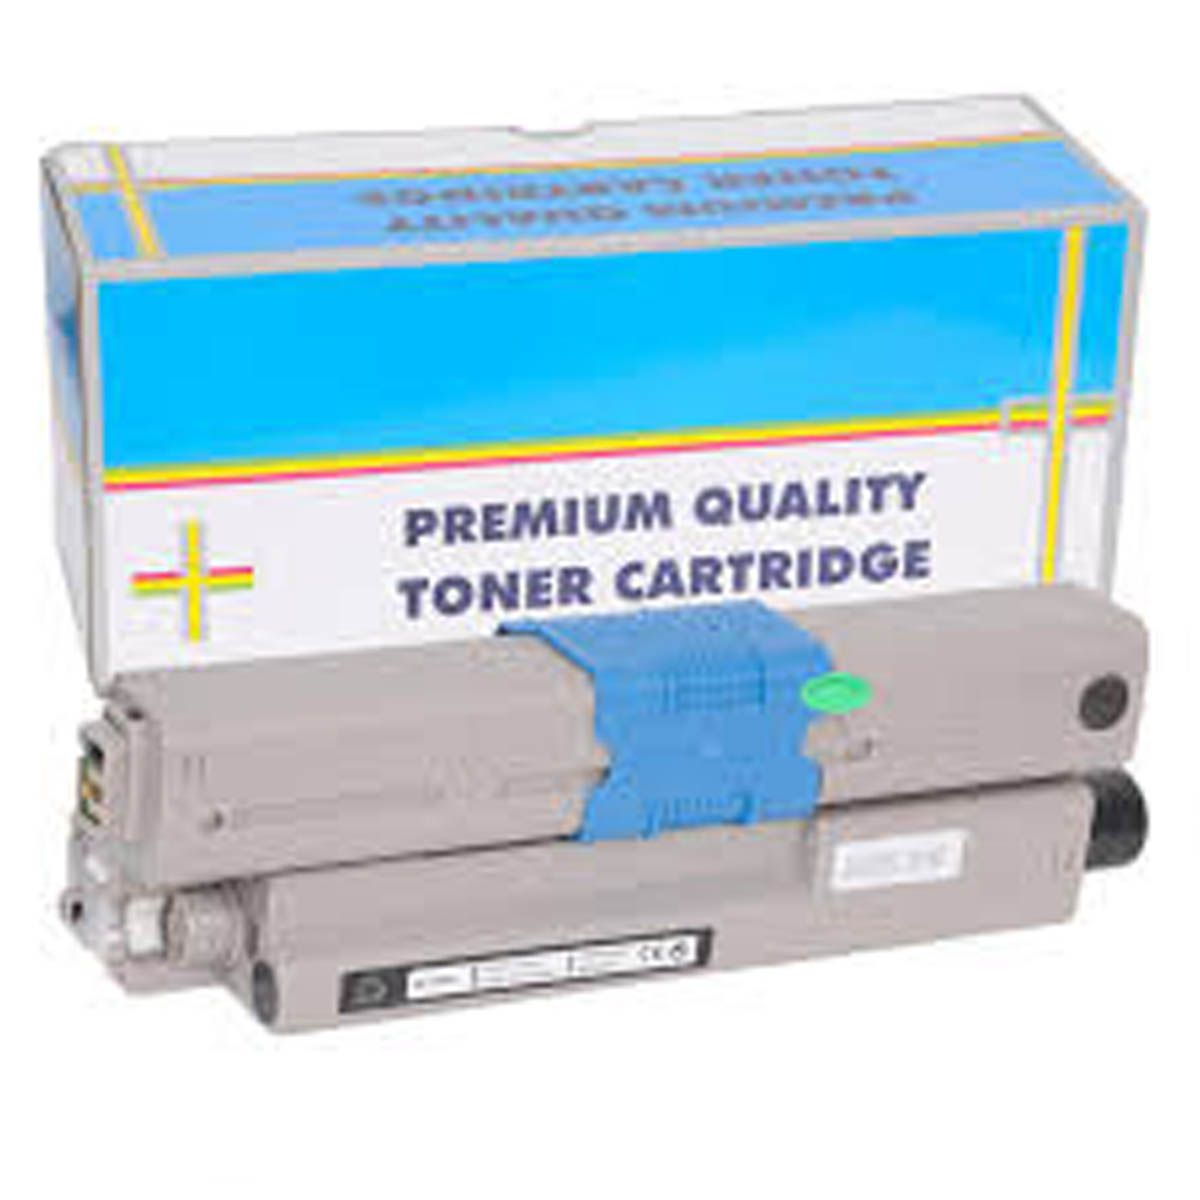 Toner OKIDATA C330 C530 MC361 Preto Compativel